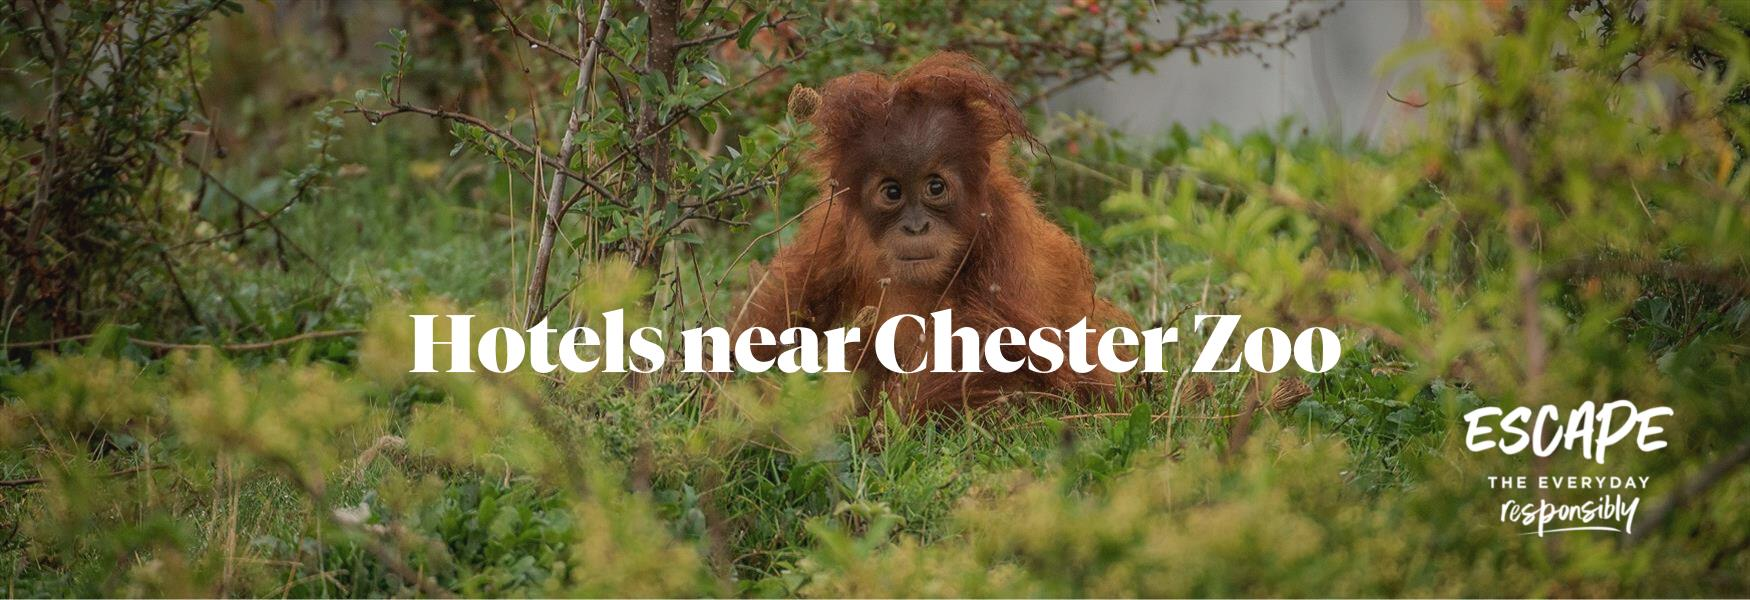 Hotels near Chester Zoo